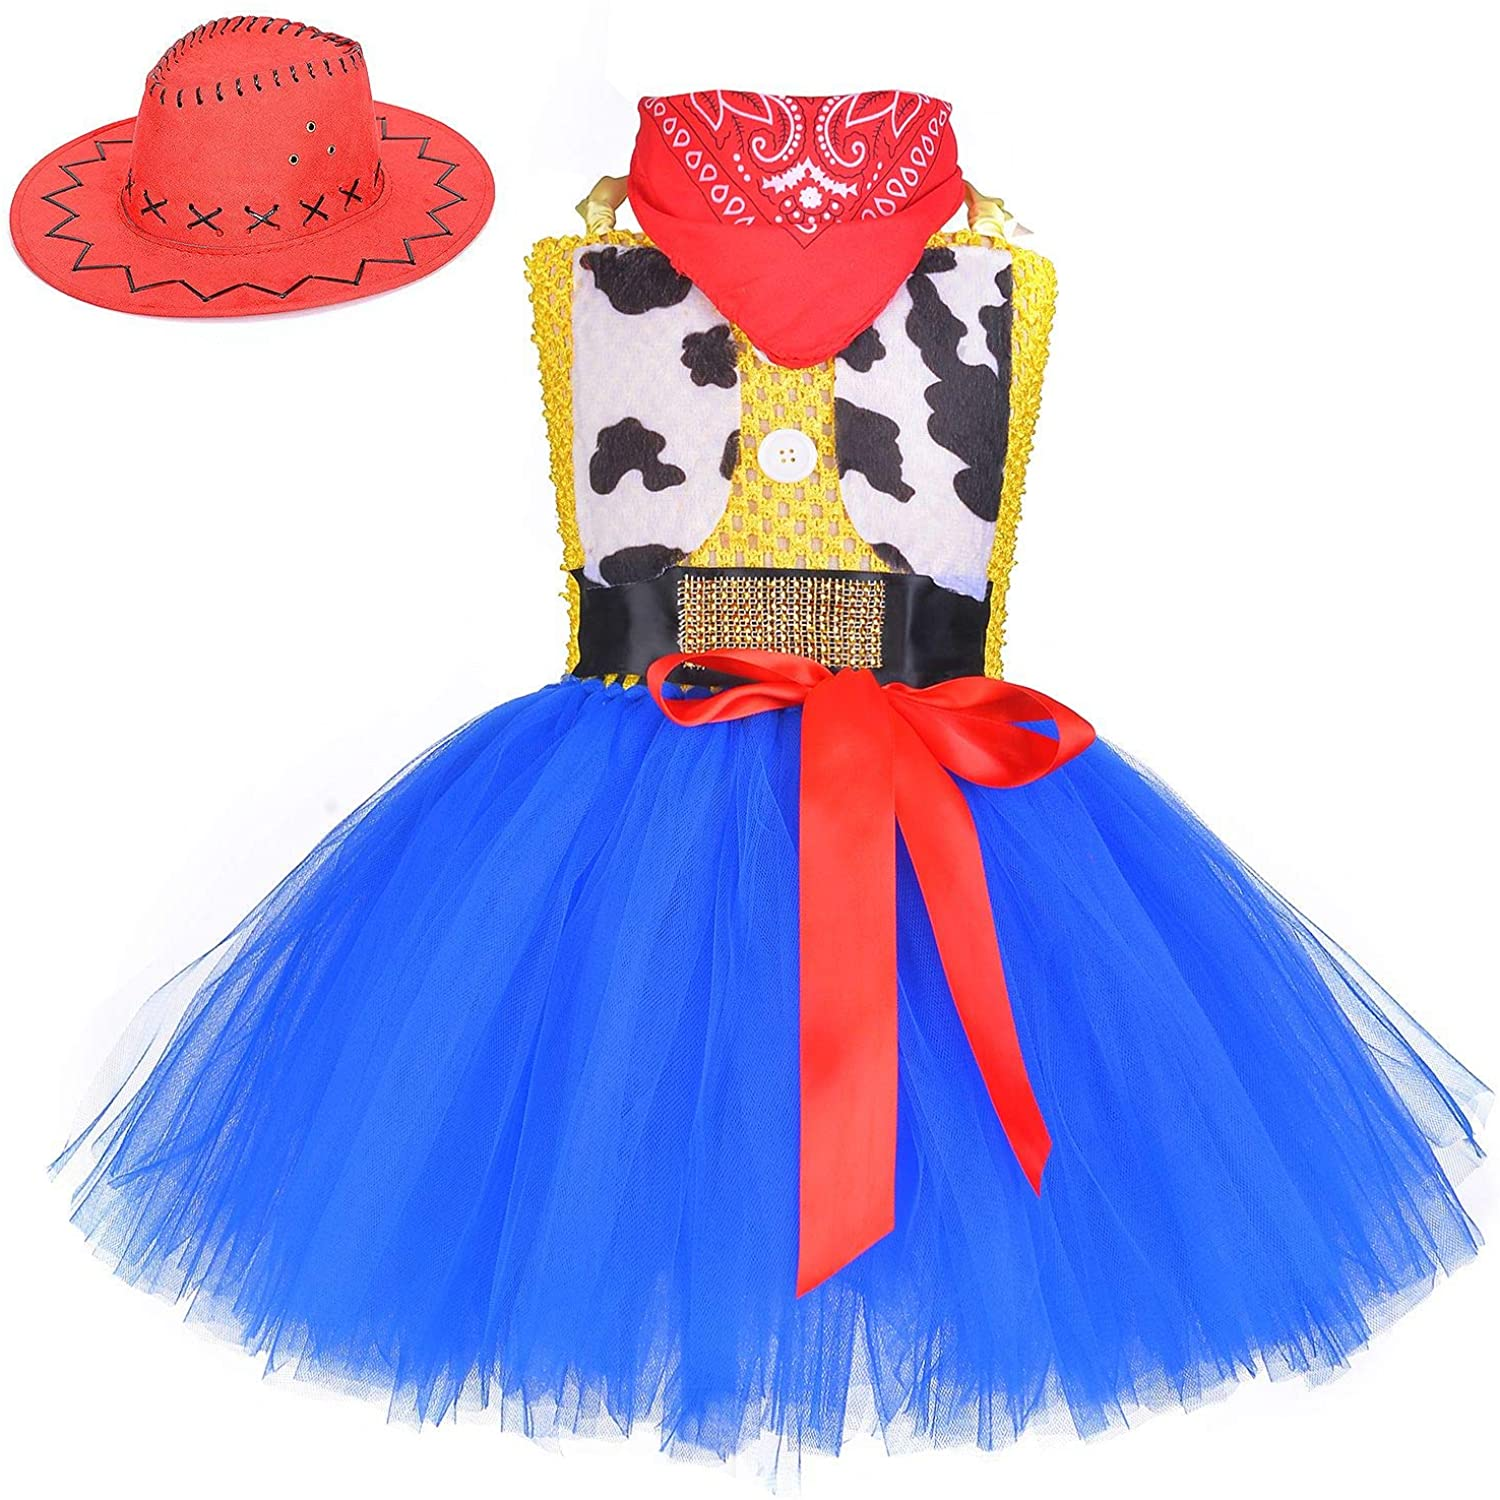 QPANCY Cowgirl Costume for Girls Cowboy Outfits Cosplay Dresses Halloween Party with Hat&Bandana